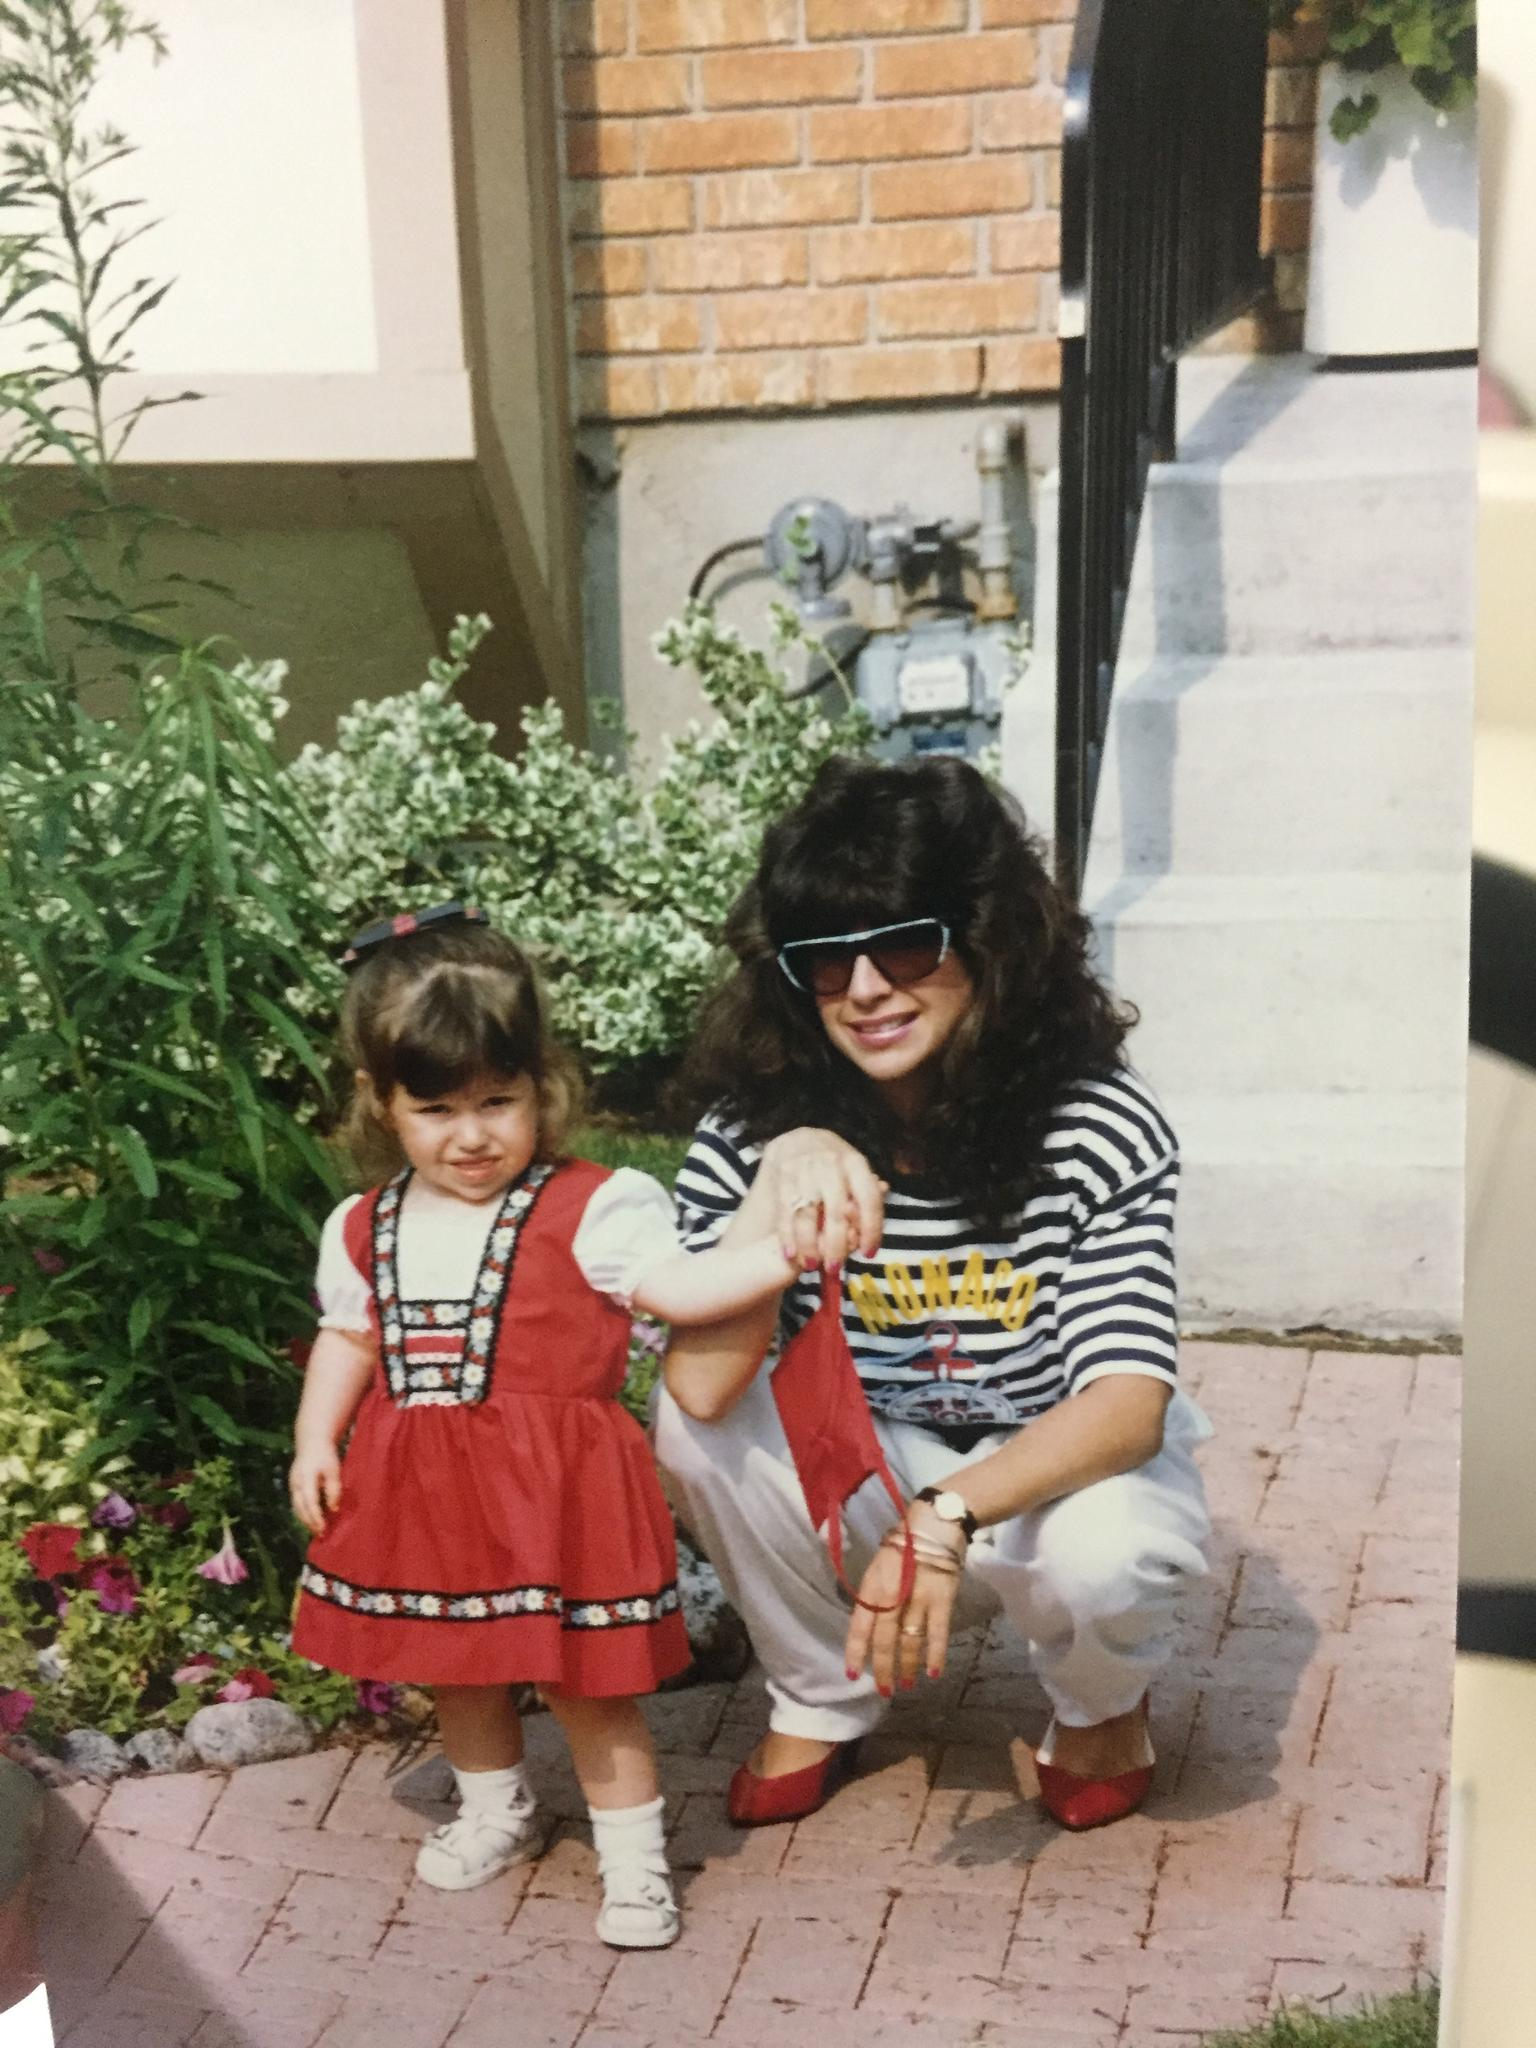 Danielle and her mom, an 80s fashion plate